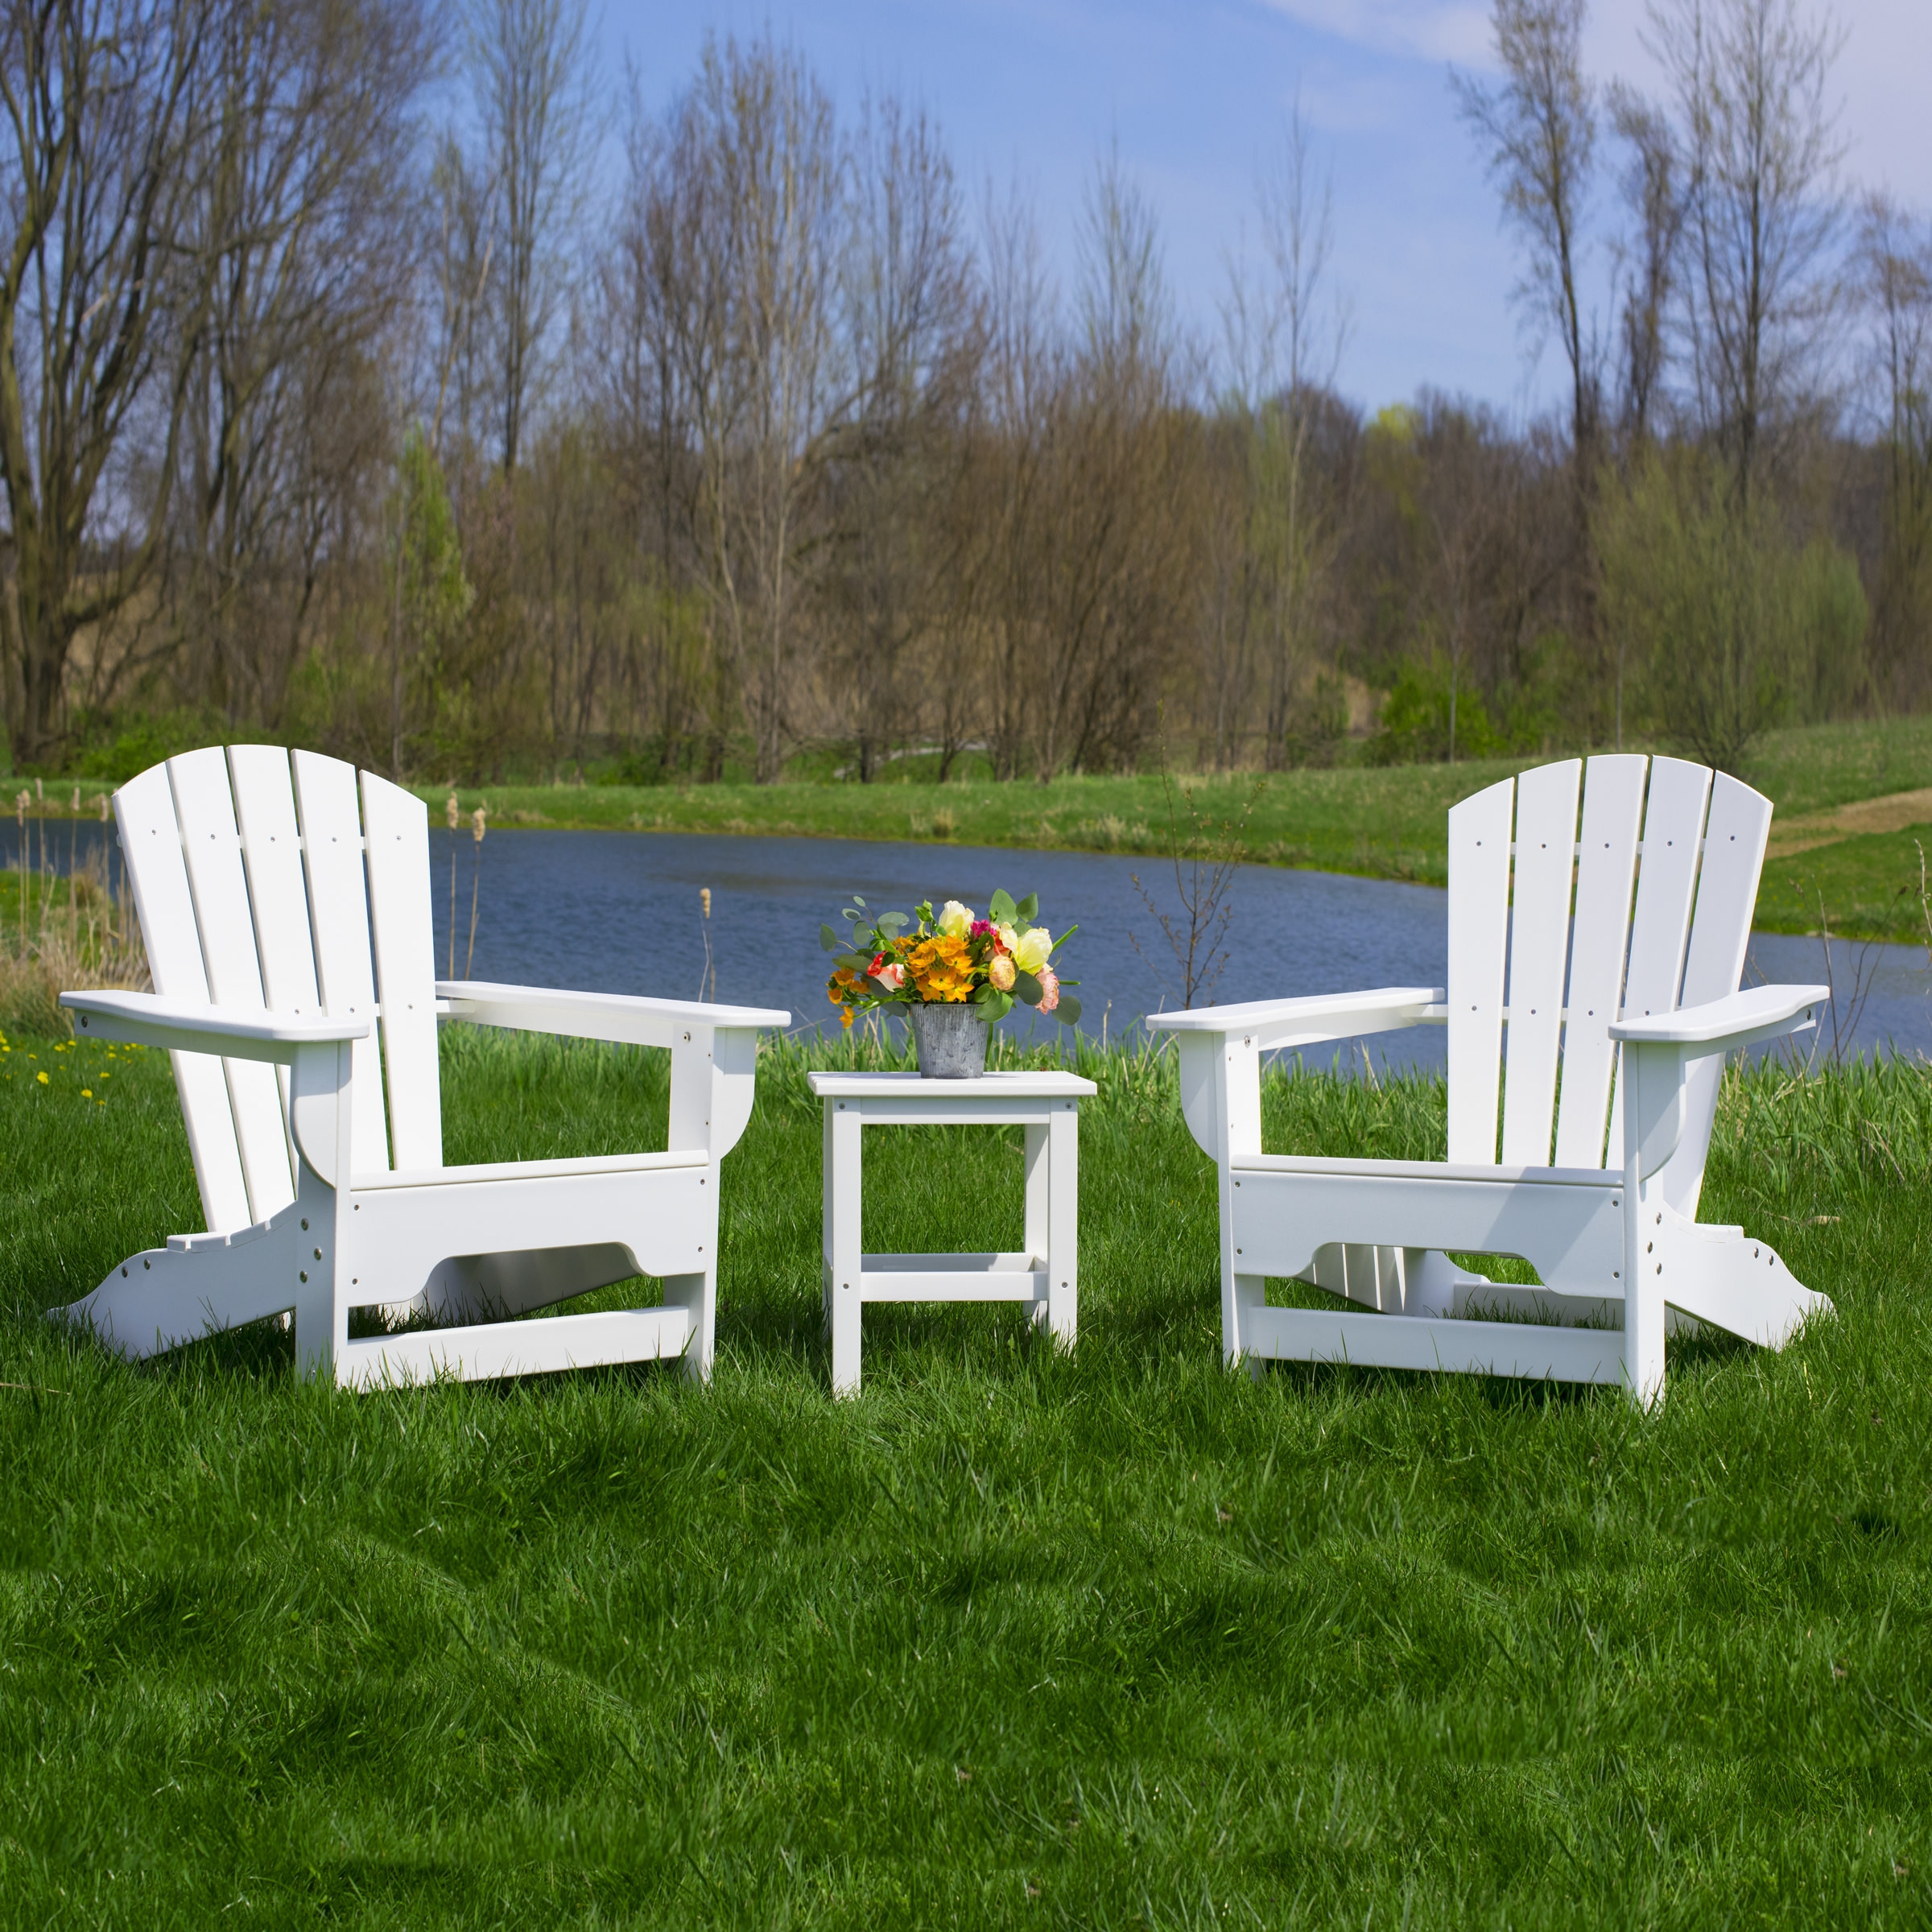 The Boca Raton Adirondack Set by Durogreen Outdoor